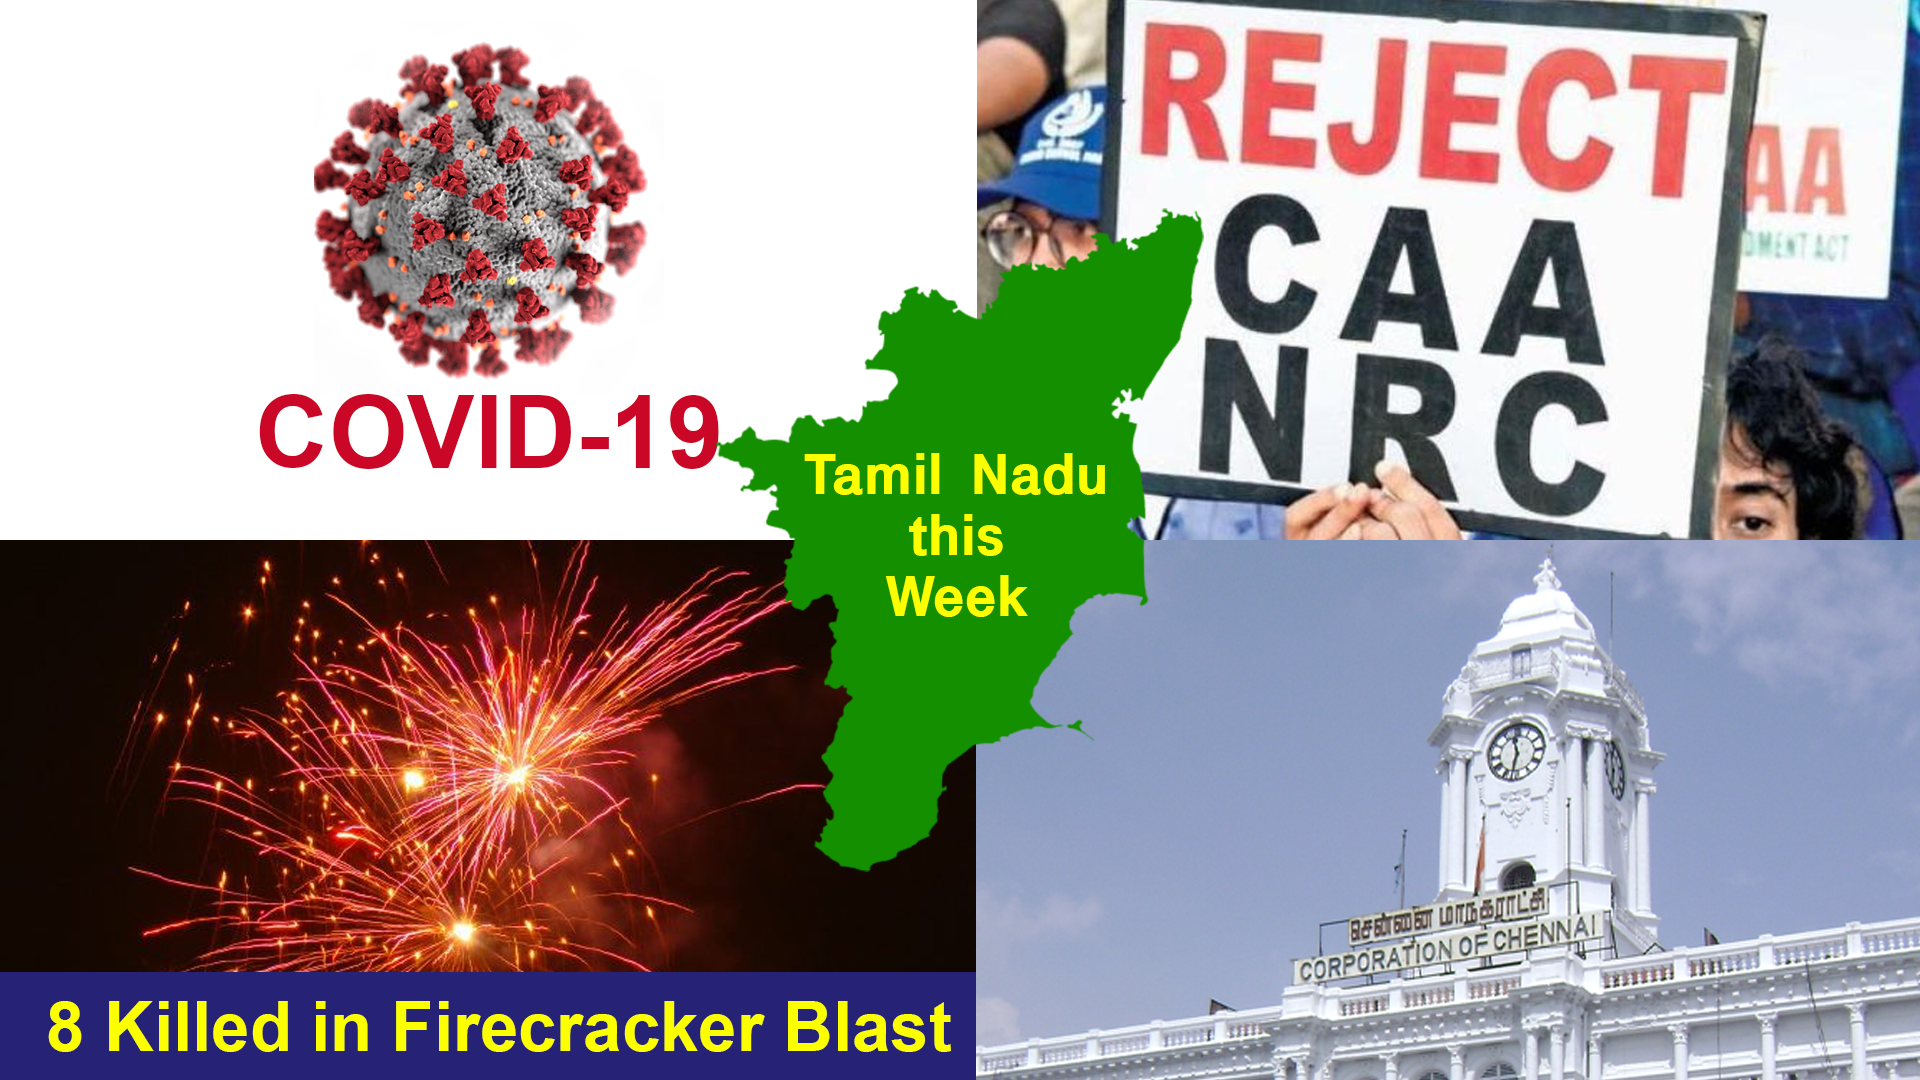 TN this Week: COVID-19 Affects Normalcy, Anti-CAA Protests Called Off and Firecracker Unit Blast Kills Nine Workers